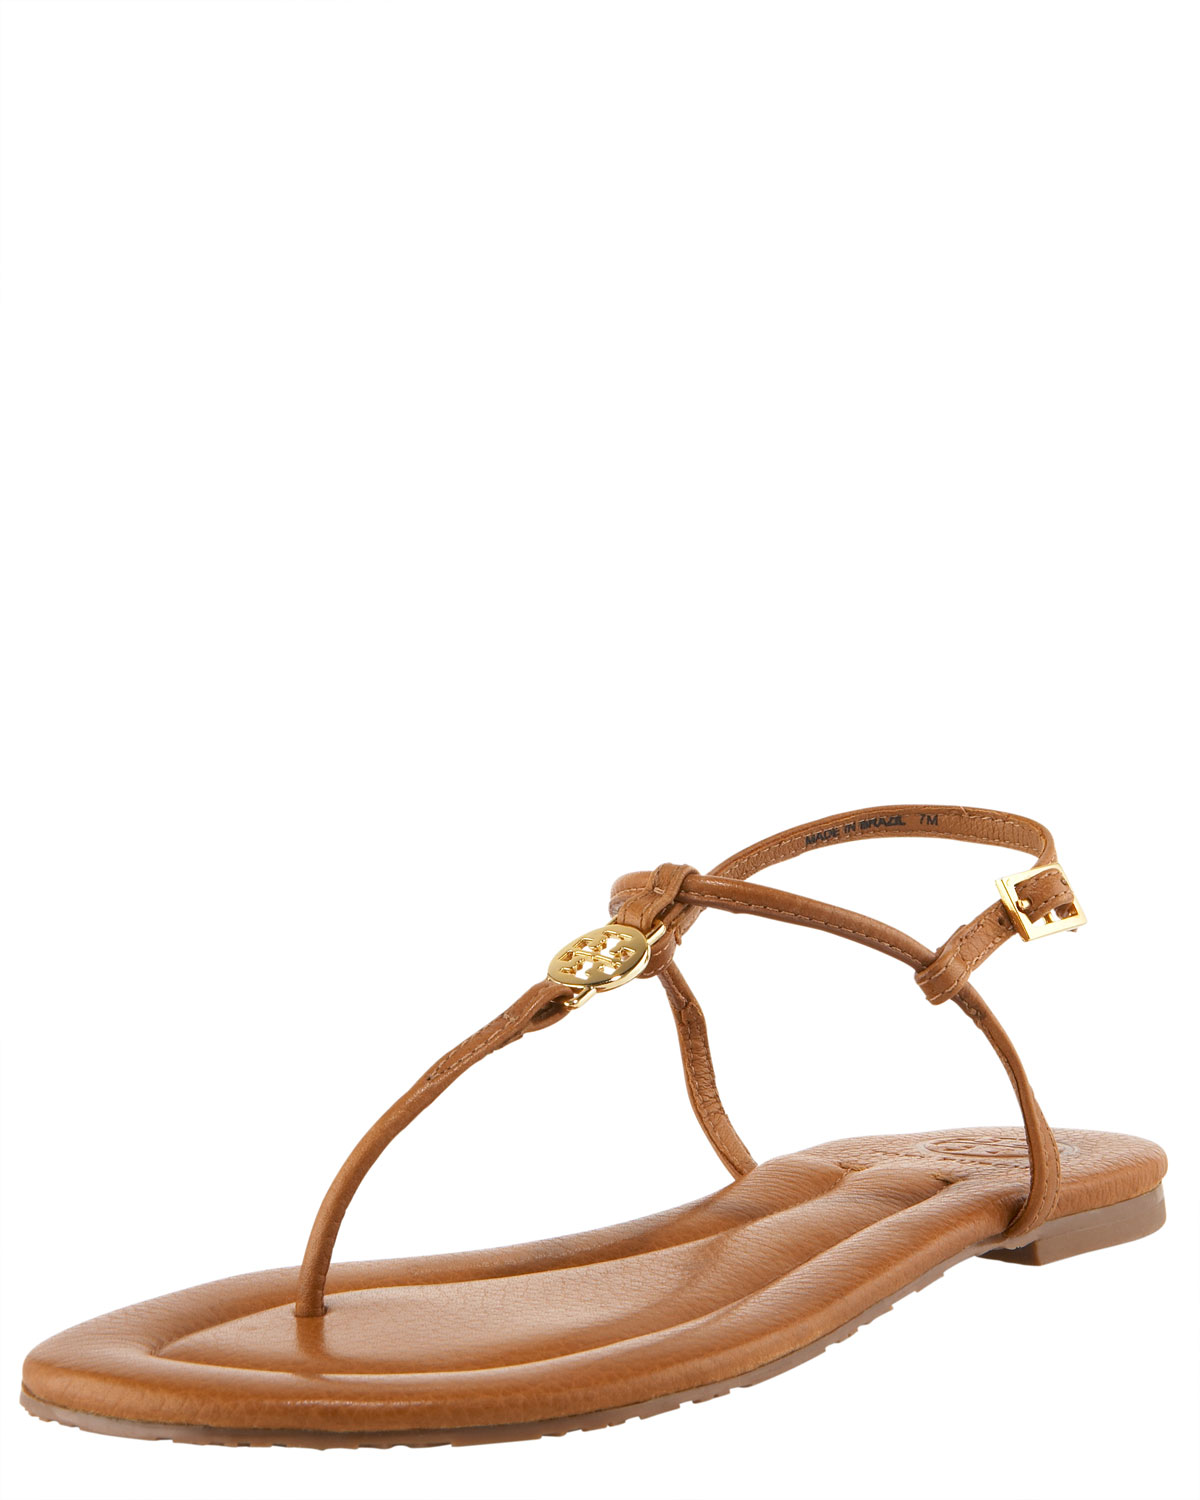 e9c7b4977 ... good lyst tory burch emmy logo thong sandal in brown 51611 e6113 ...